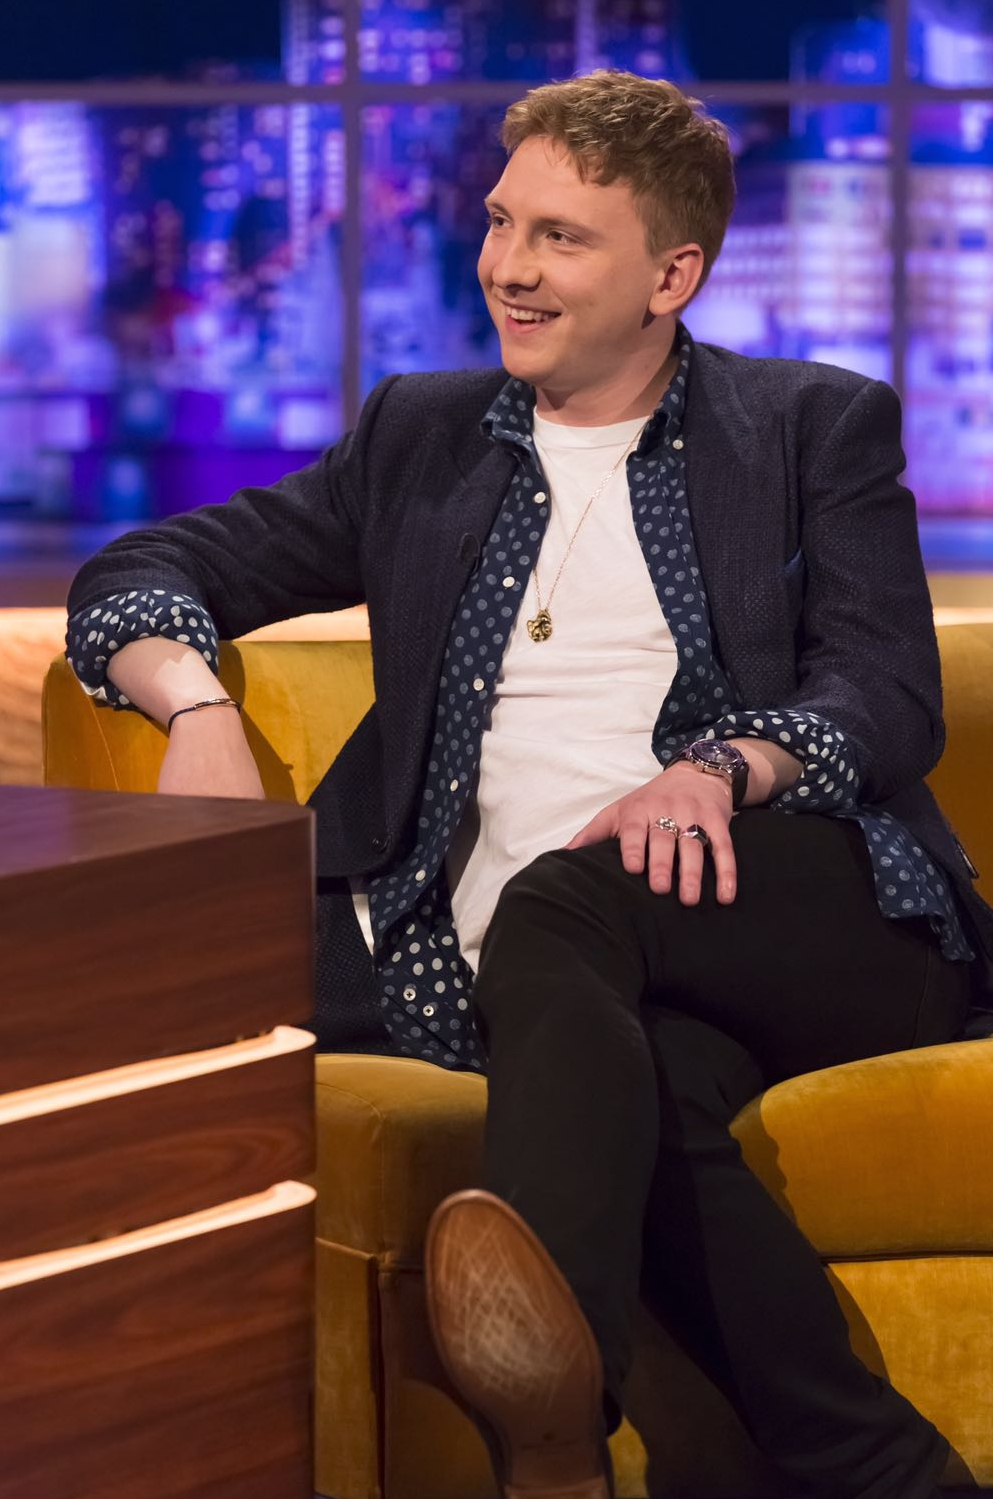 Award winning Comedian Joe Lycett wearing a GANDHUM AW16 collection blended jacket to the Jonathan Ross Show.   Photo Credit: Brian J Ritchie/Hotsauce Editorial Use Only. Hotsauce/REX/Shutterstock